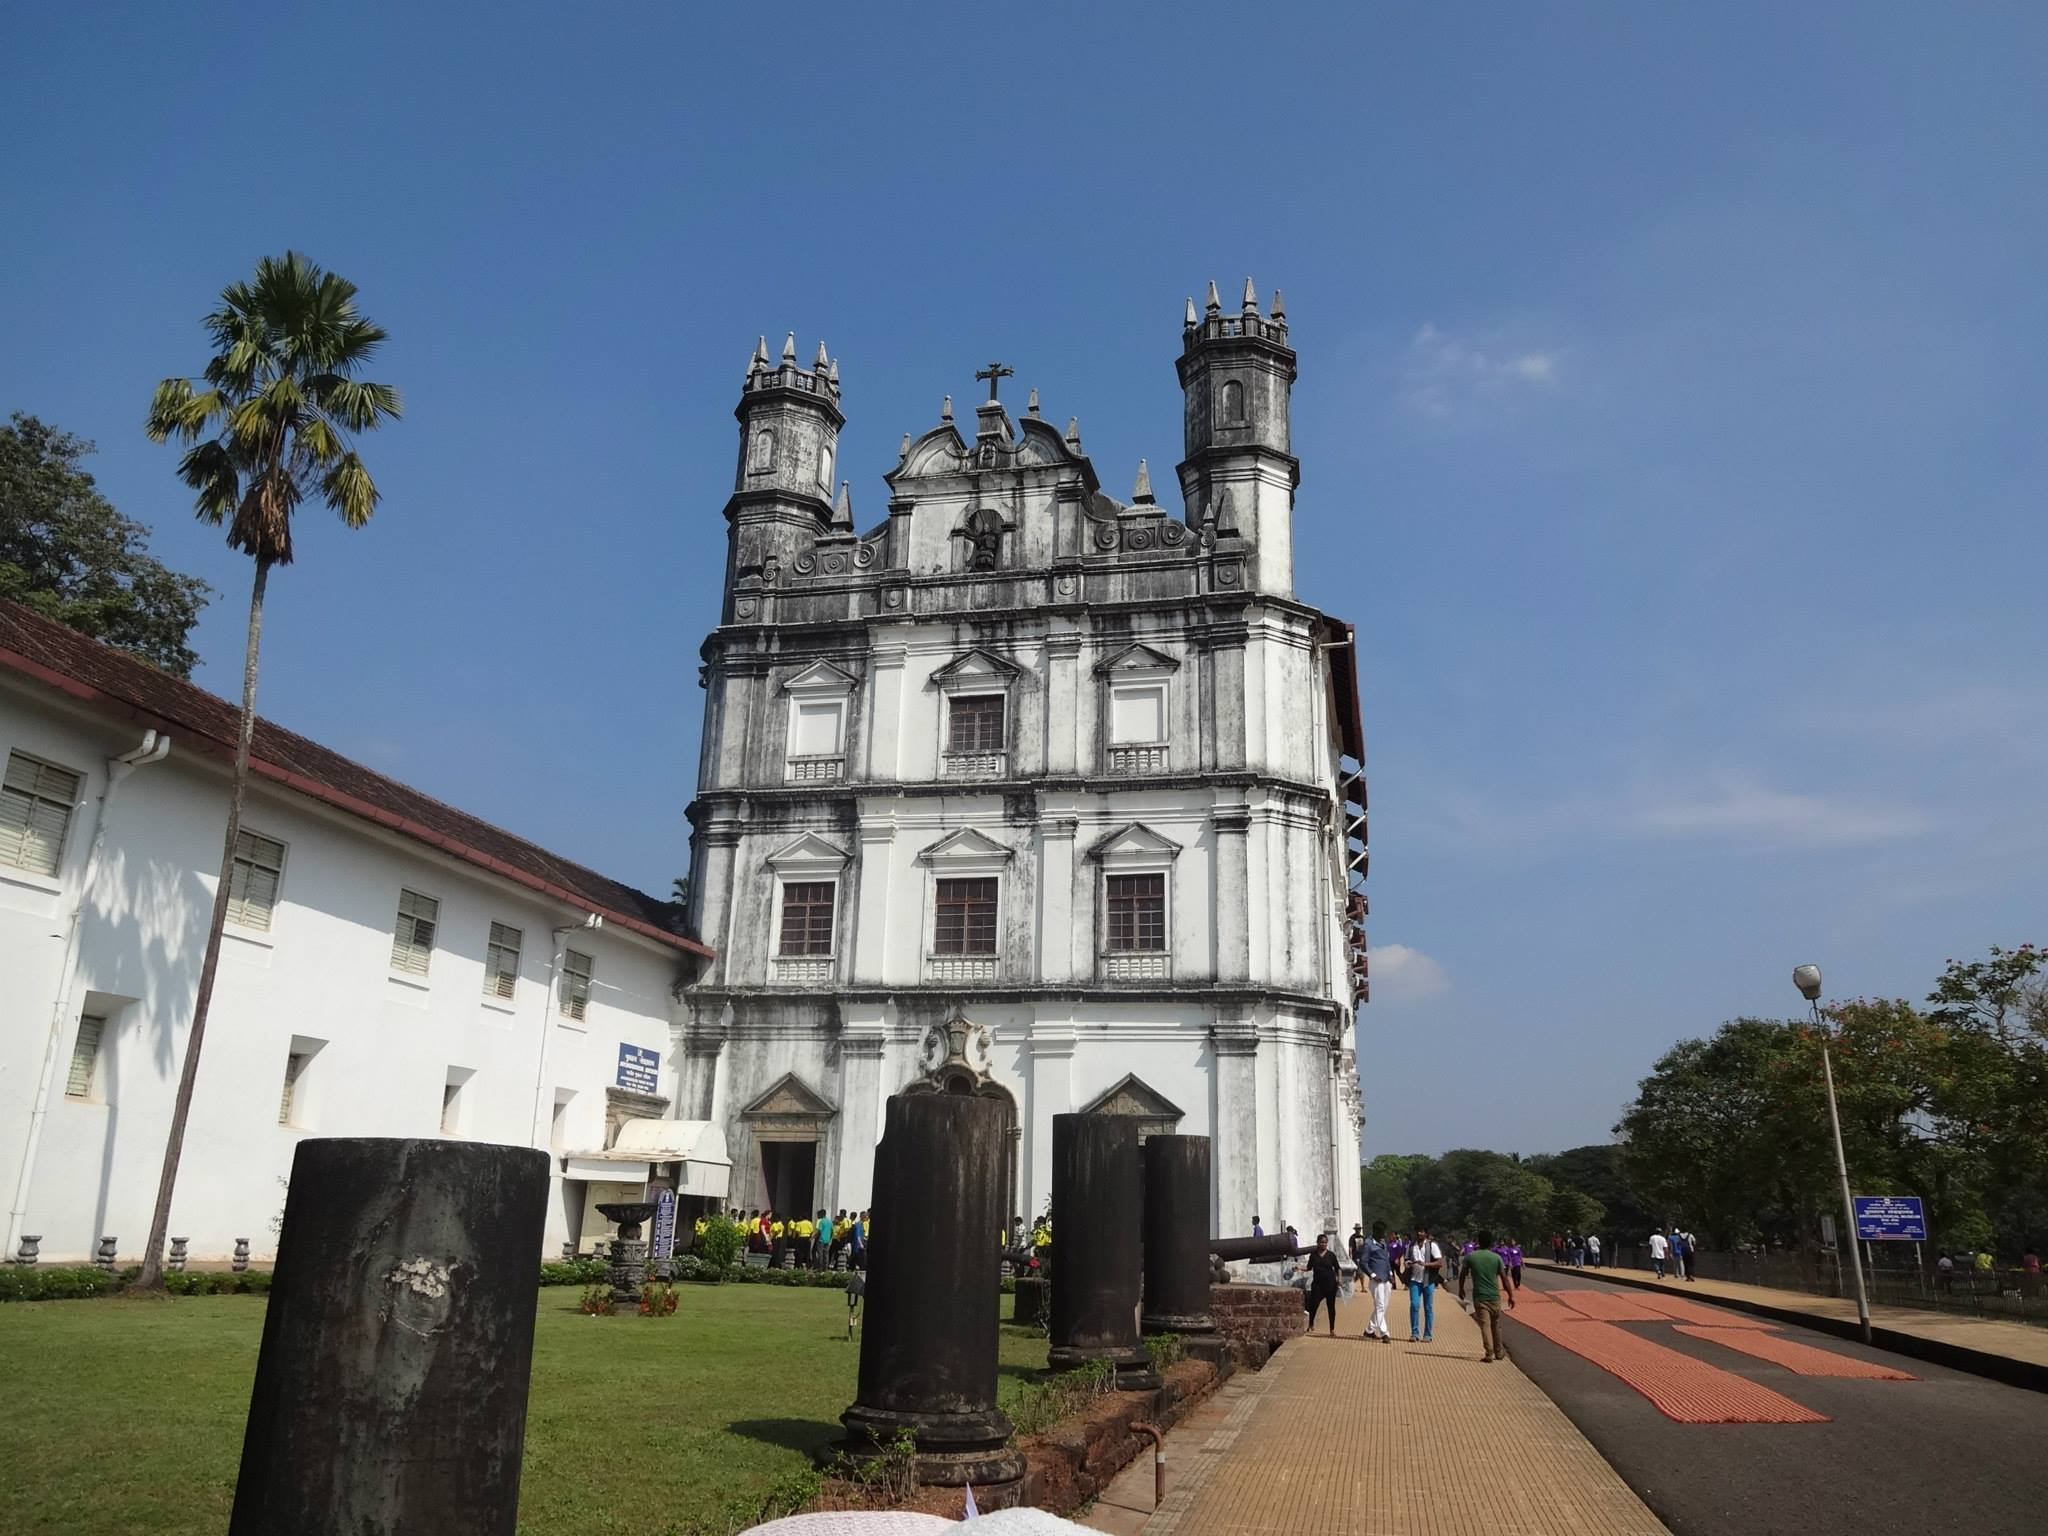 St. Francis of Assisi church at Old Goa.